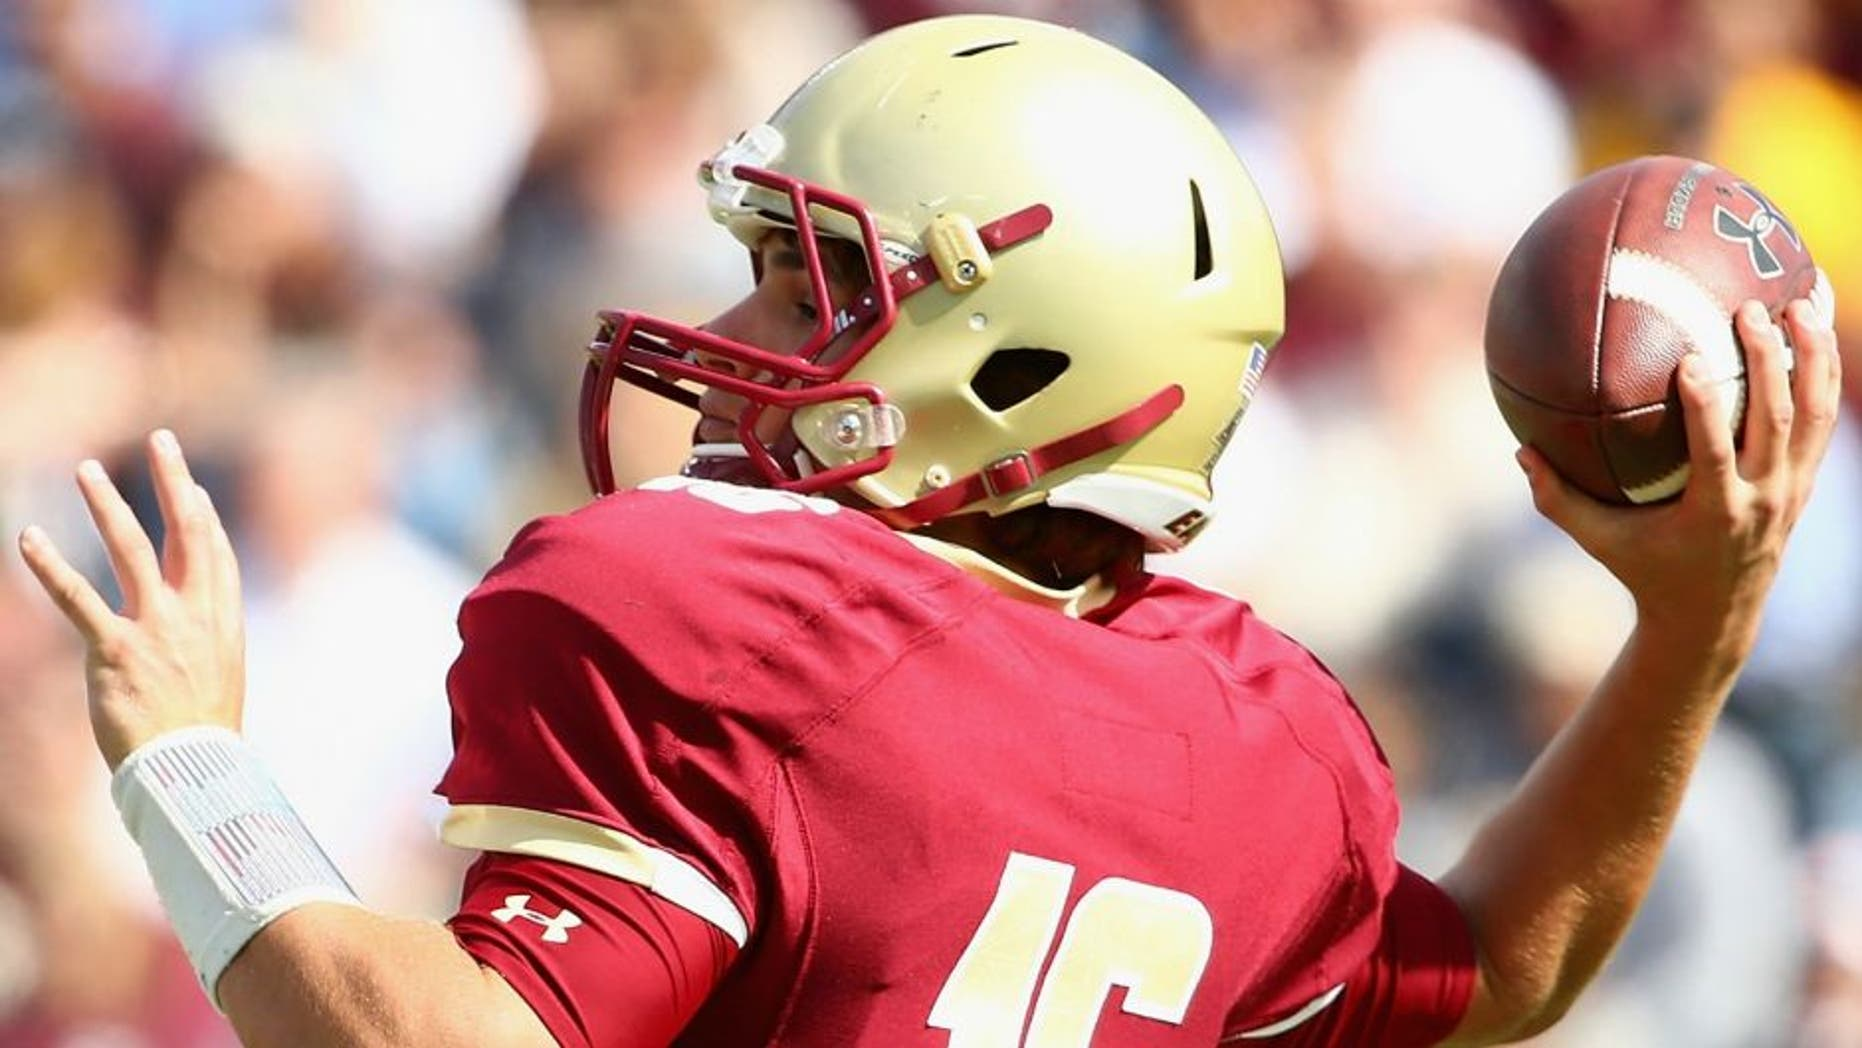 > at Alumni Stadium on September 26, 2015 in Chestnut Hill, Massachusetts.,CHESTNUT HILL, MA - SEPTEMBER 26: Troy Flutie #16 of the Boston College Eagles makes a pass during the first quarter against the Northern Illinois Huskies at Alumni Stadium on September 26, 2015 in Chestnut Hill, Massachusetts. (Photo by Maddie Meyer/Getty Images)